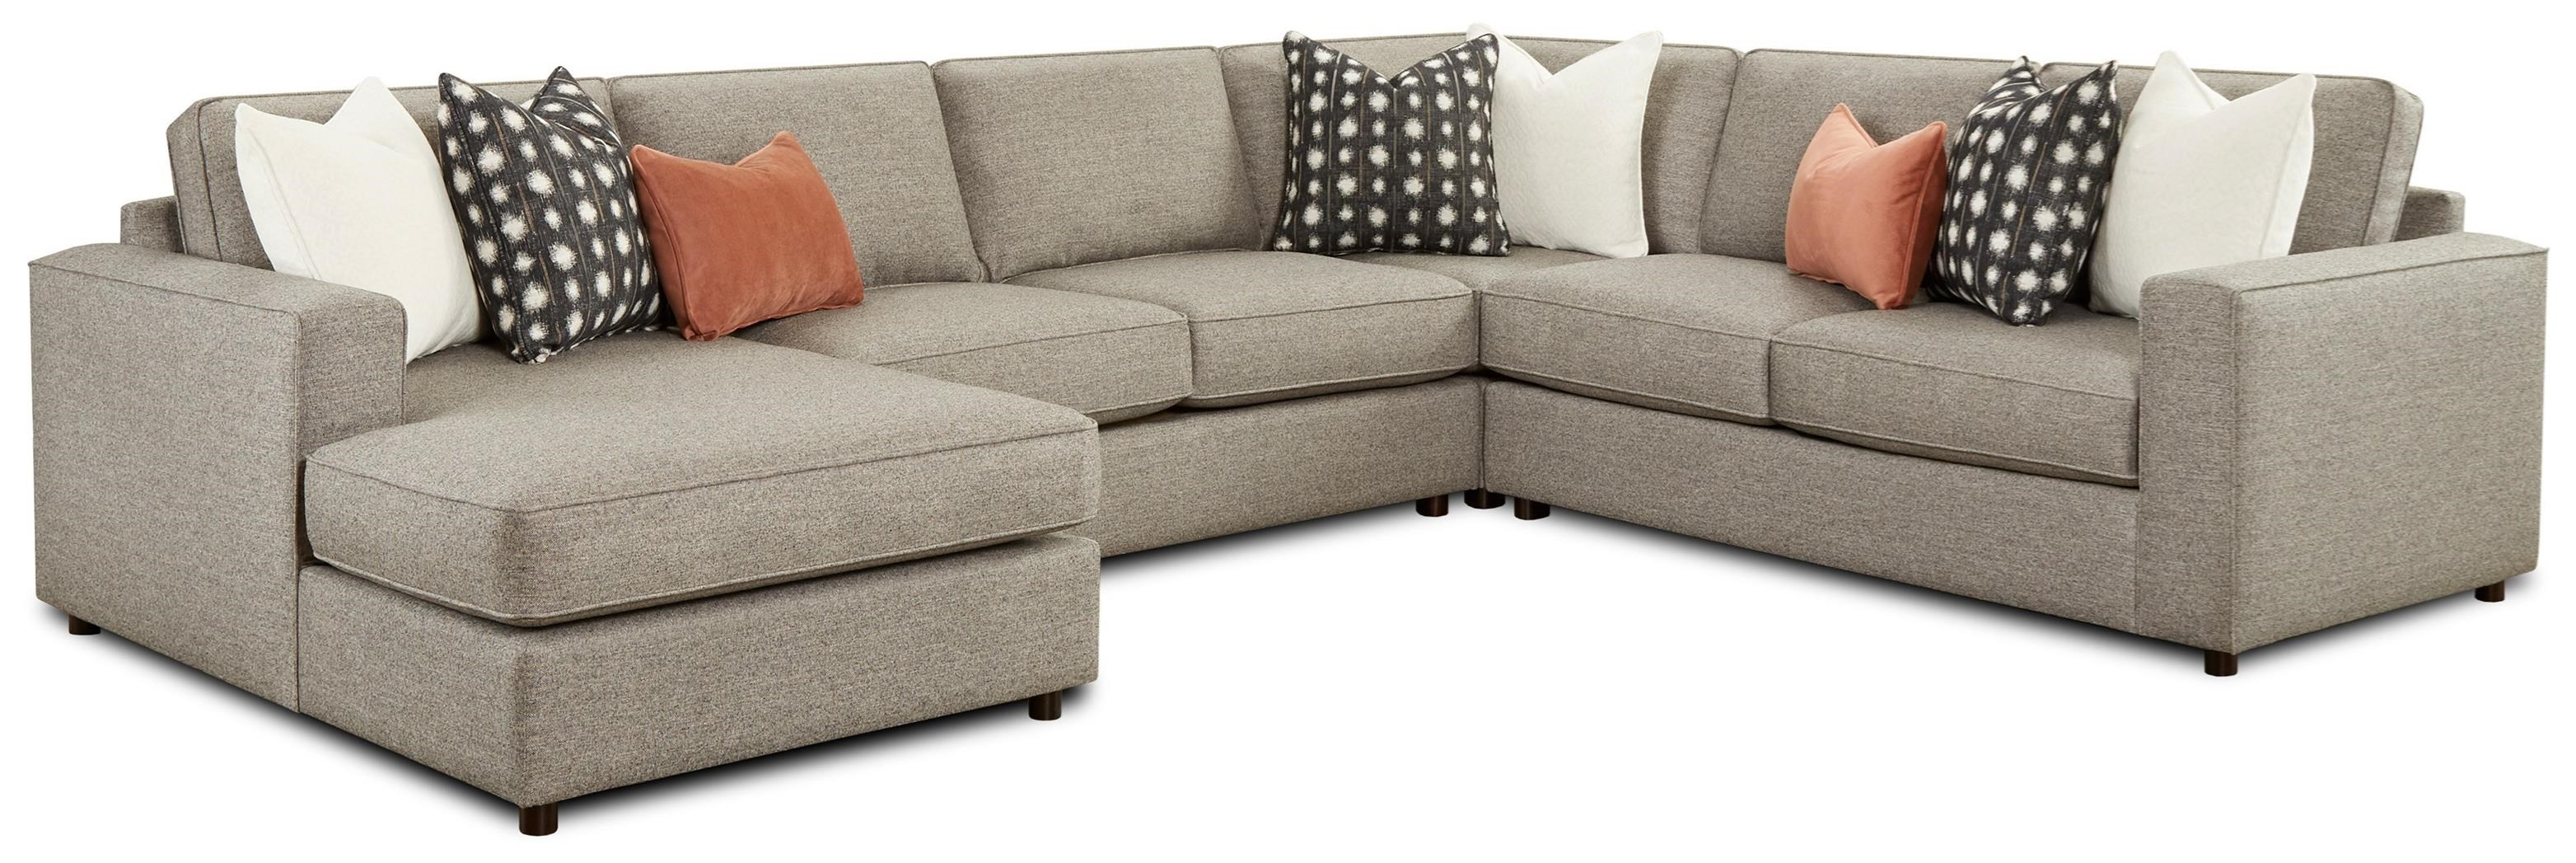 2061 4-Piece Sectional with Chaise by FN at Lindy's Furniture Company